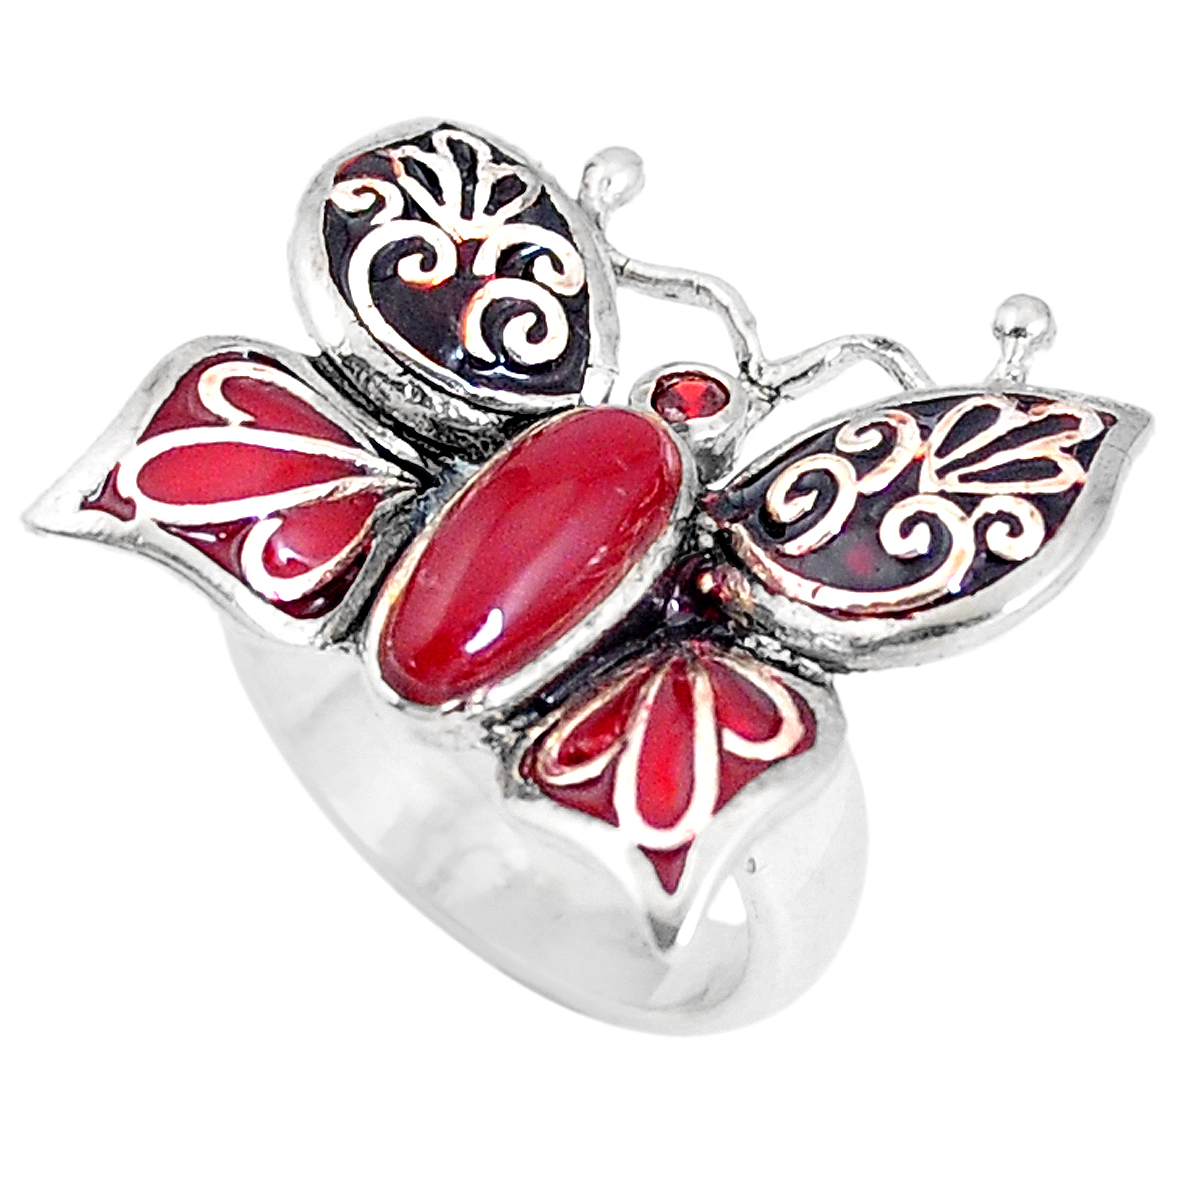 A 925 silver enamelled butterfly shaped ring set with onyx and garnet, (L).